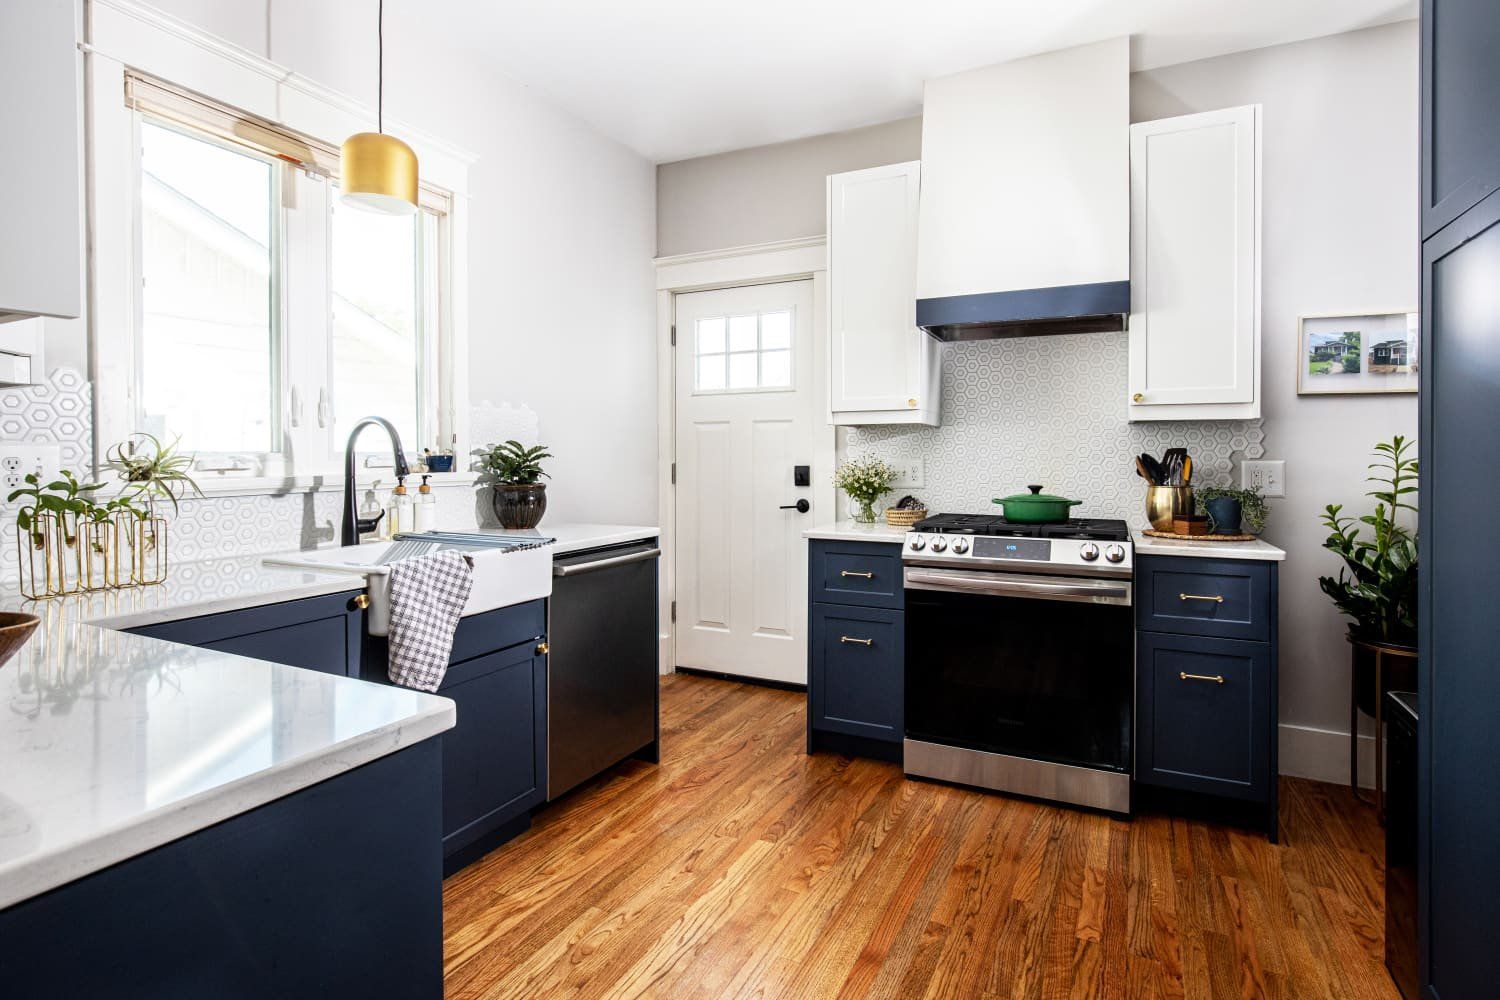 This Kitchen Got a Down-to-the-Studs Gut Renovation — Here's How Every Dollar Was Spent